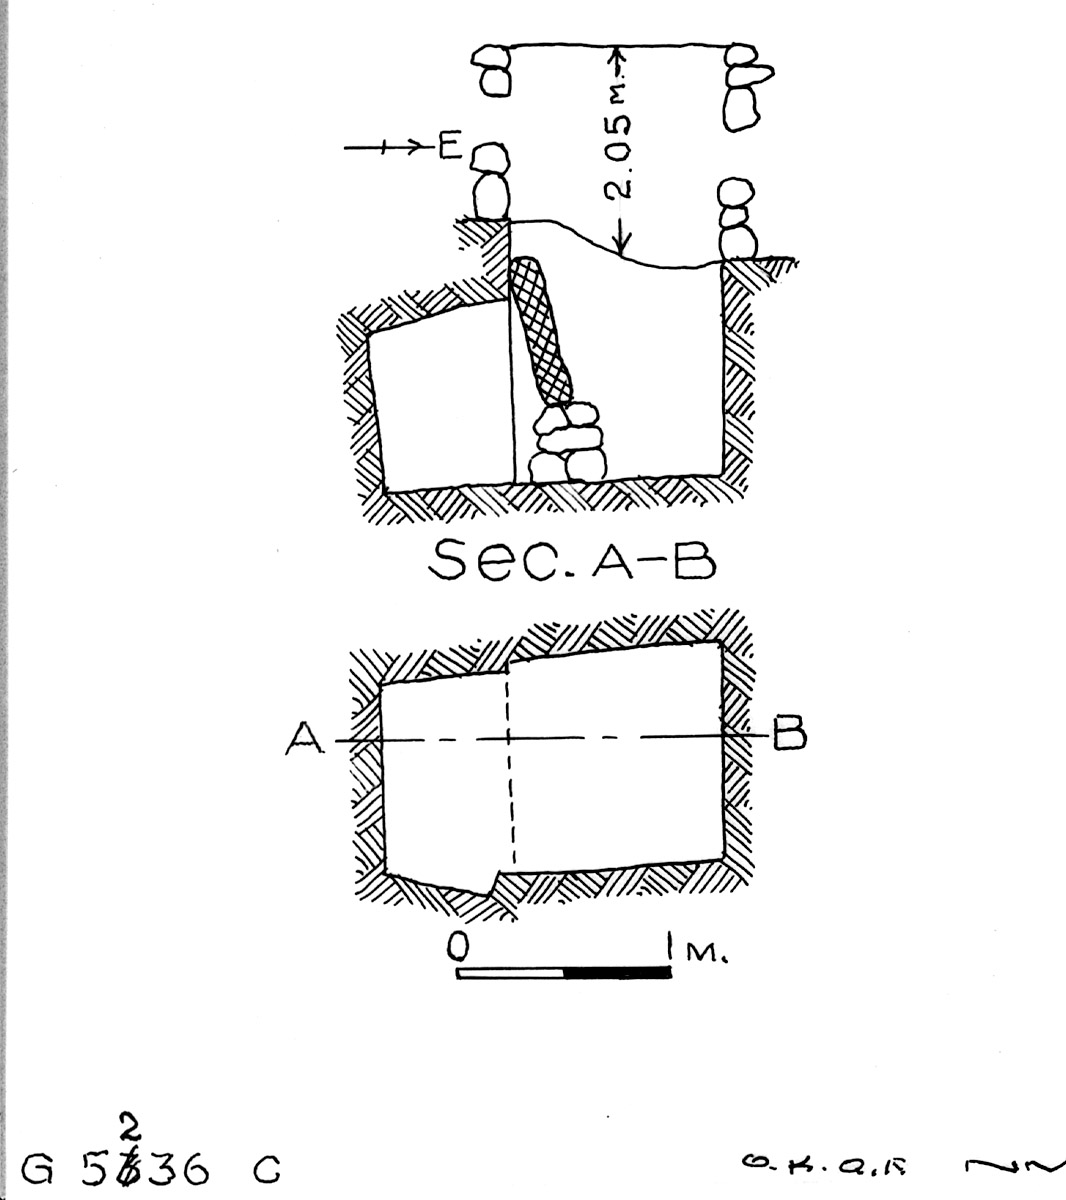 Maps and plans: G 5236, Shaft C